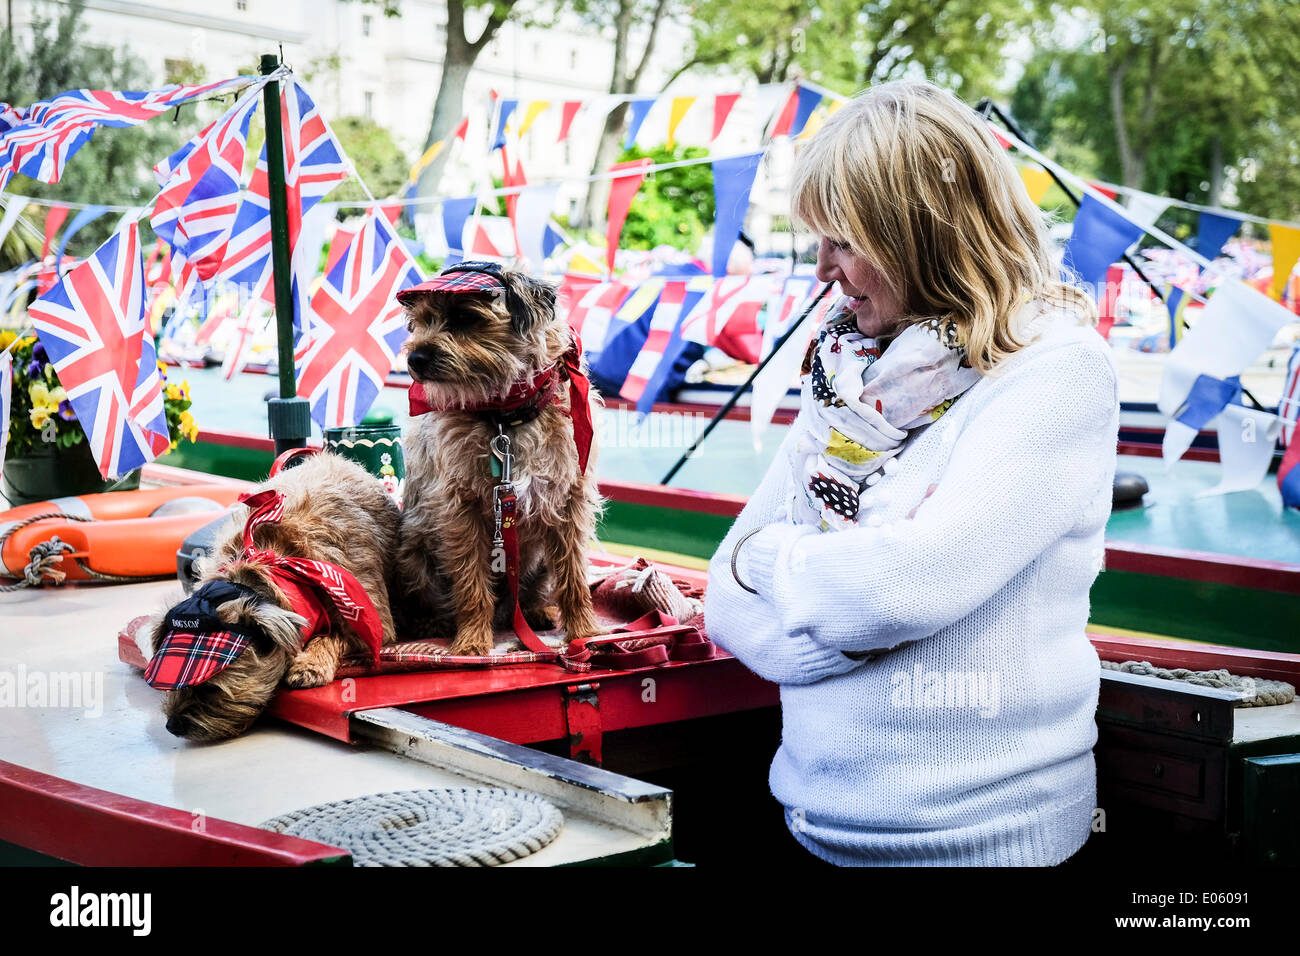 Little Venice, London, UK. 3rd May 2014. Two dogs, Pixie and Gyp dressed as traditIonal bargees with their owner Sandra at the annual Canalway Cavalcade.  The celebration is organised by the Inland Waterways Association and is taking place over the May Day holiday weekend at Little Venice, Paddington, London.  Photographer:  Gordon Scammell/Alamy Live News - Stock Image